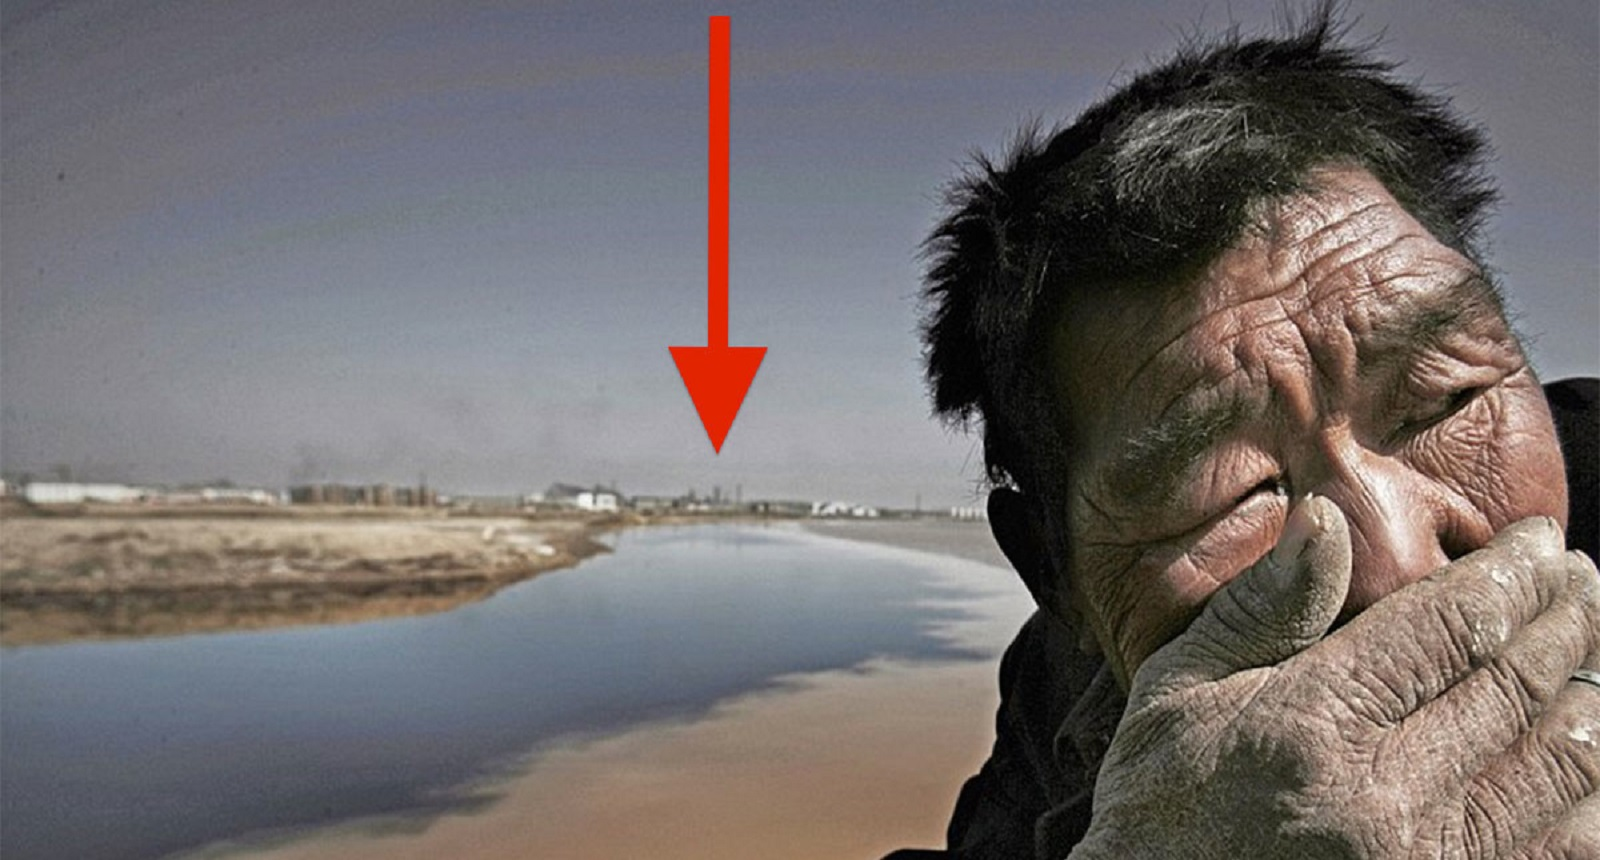 20 Pictures That Prove That Humanity Is In Danger